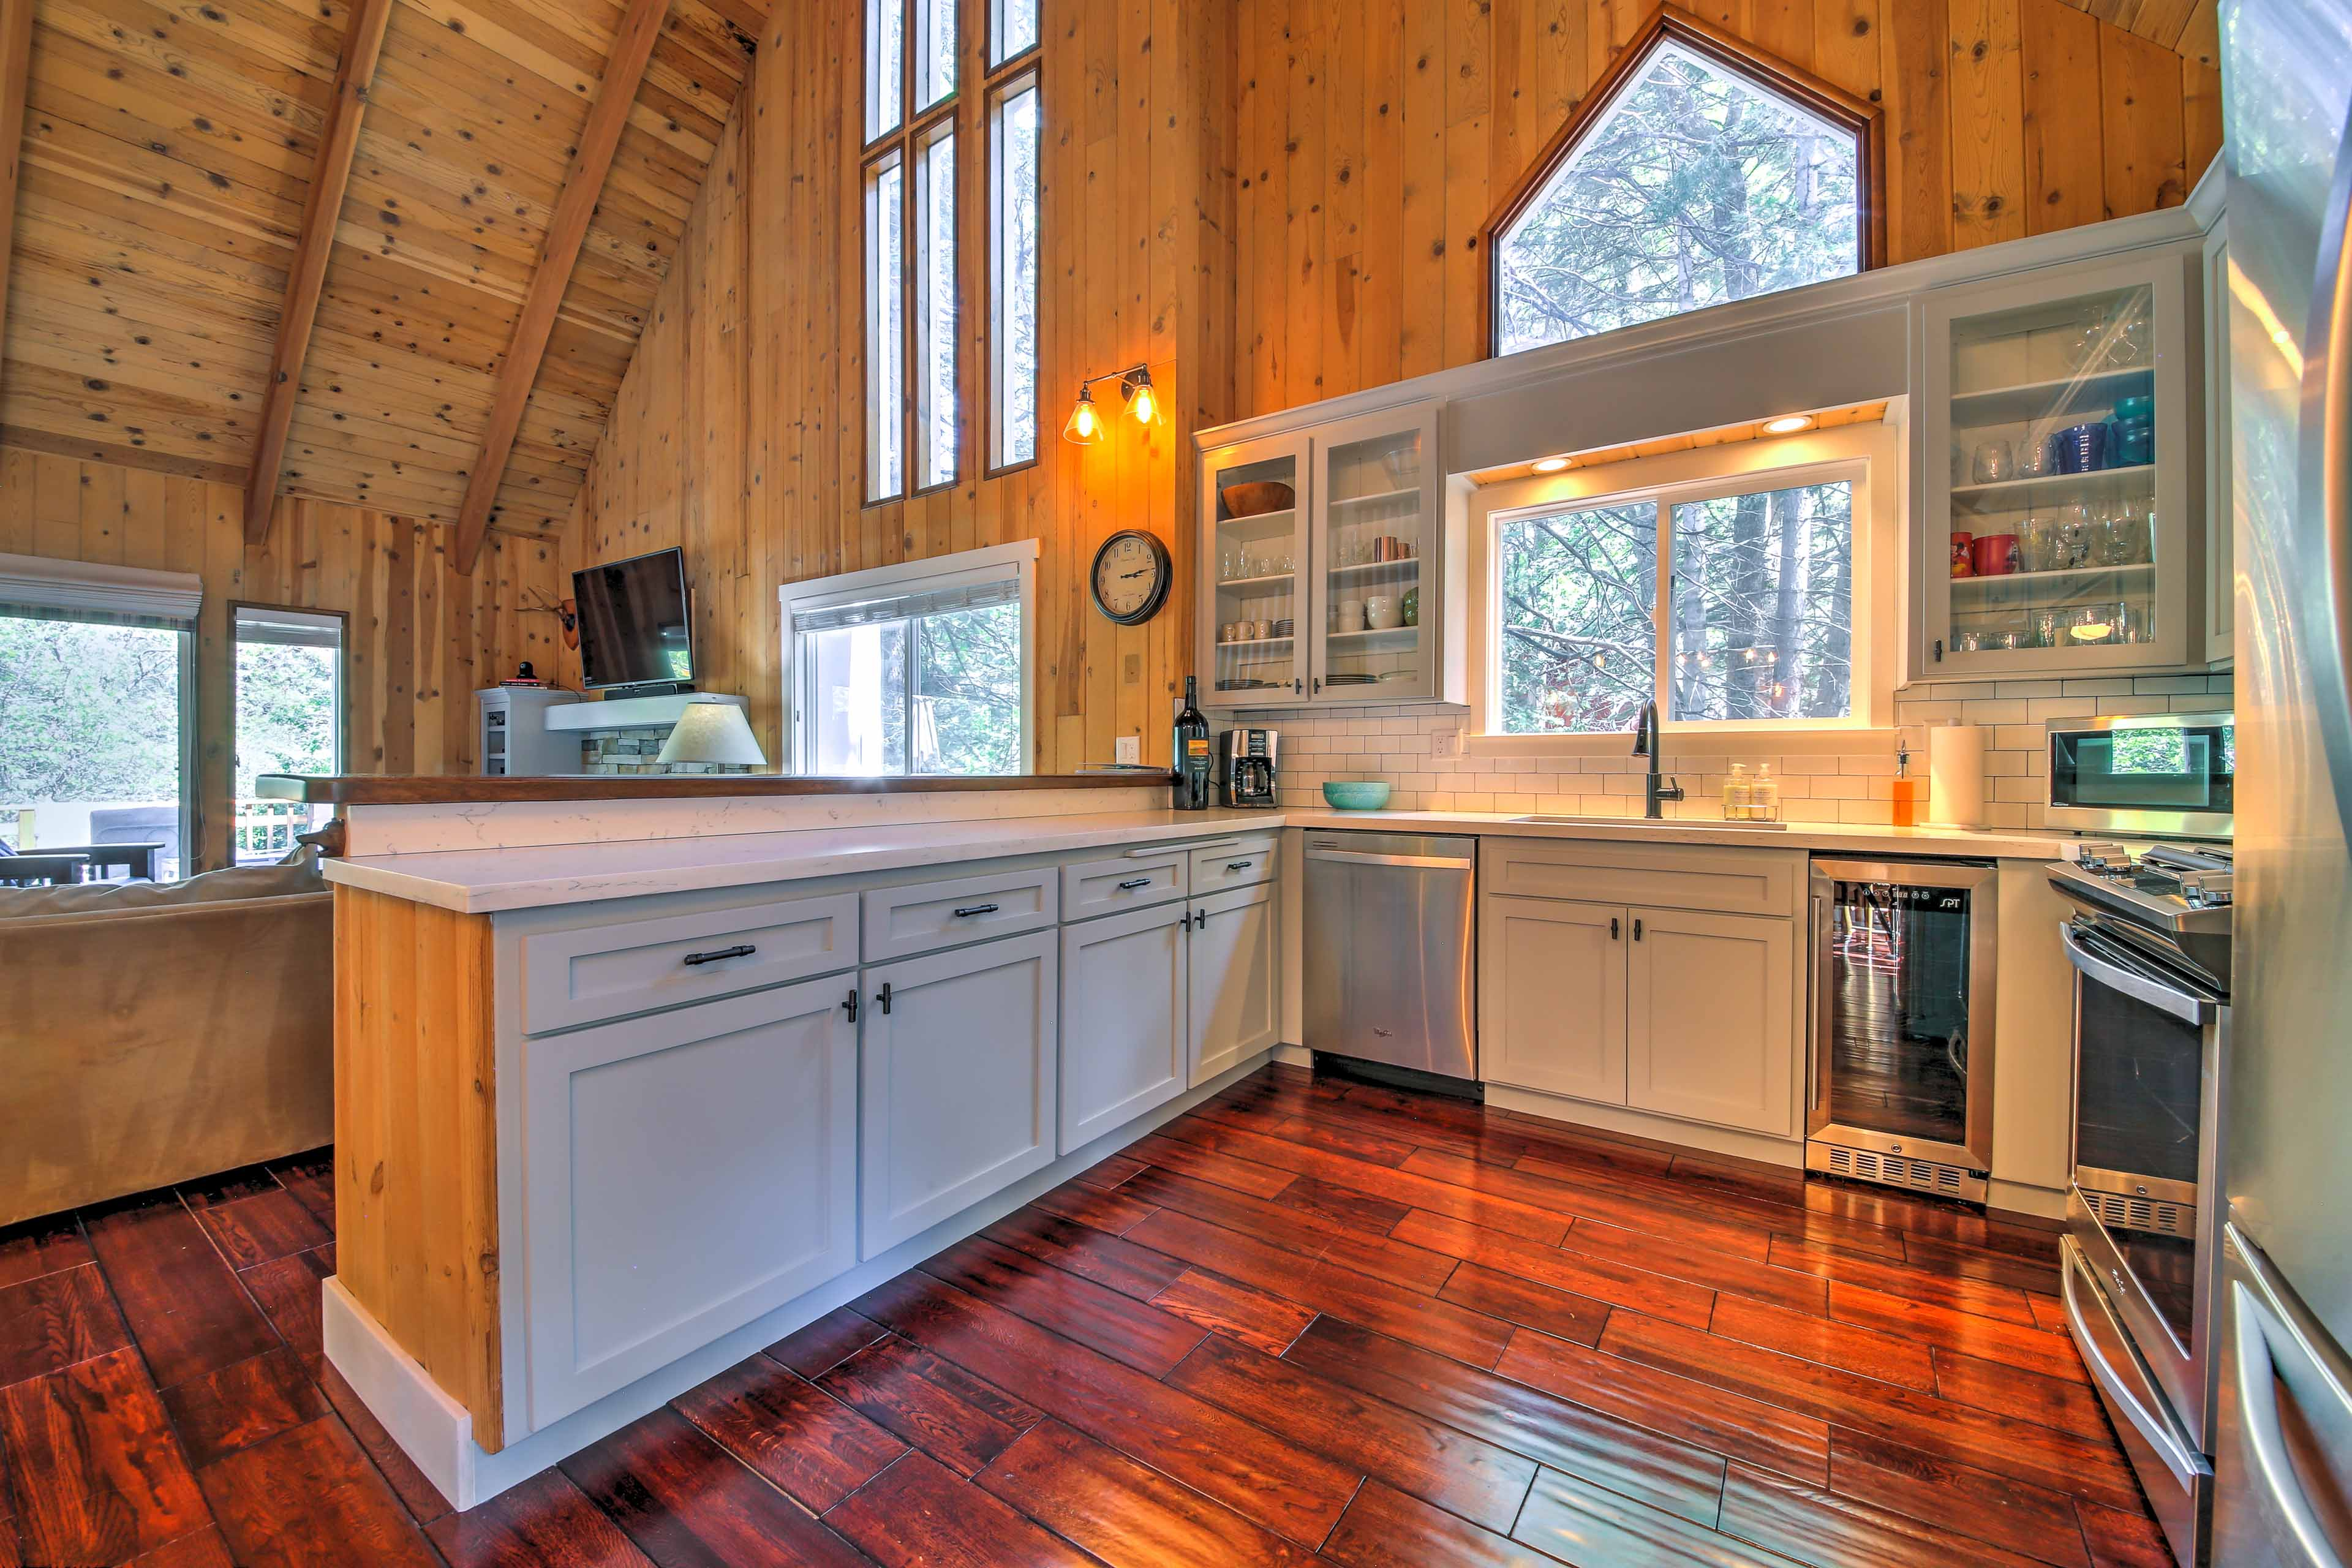 The updated kitchen offers stainless steel appliances and quartz countertops.